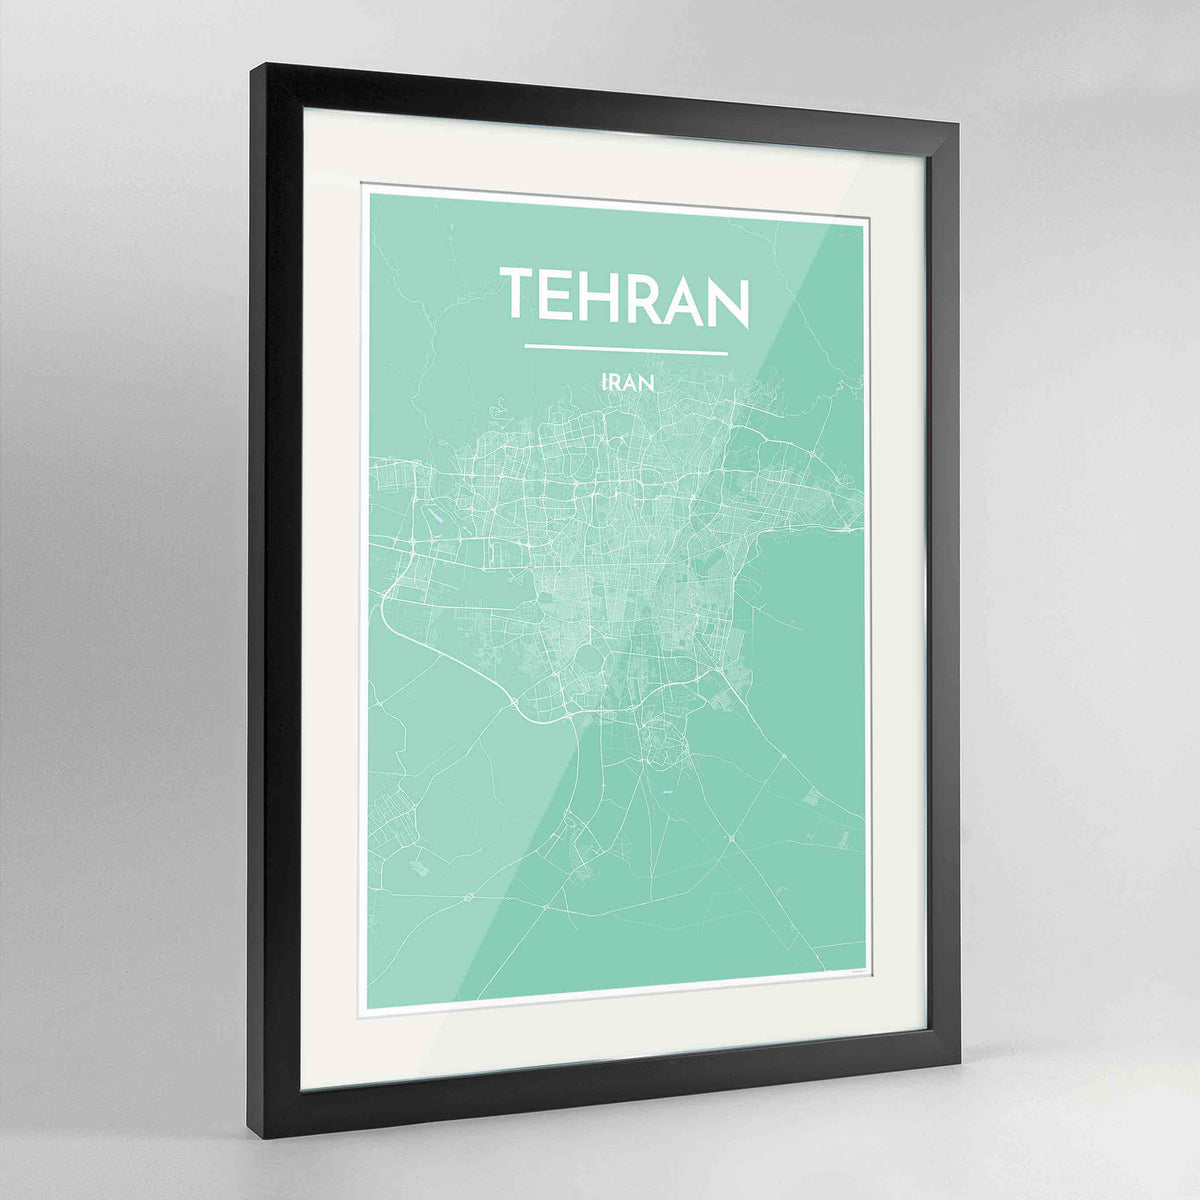 "Framed Tehran Map Art Print 24x36"" Contemporary Black frame Point Two Design Group"